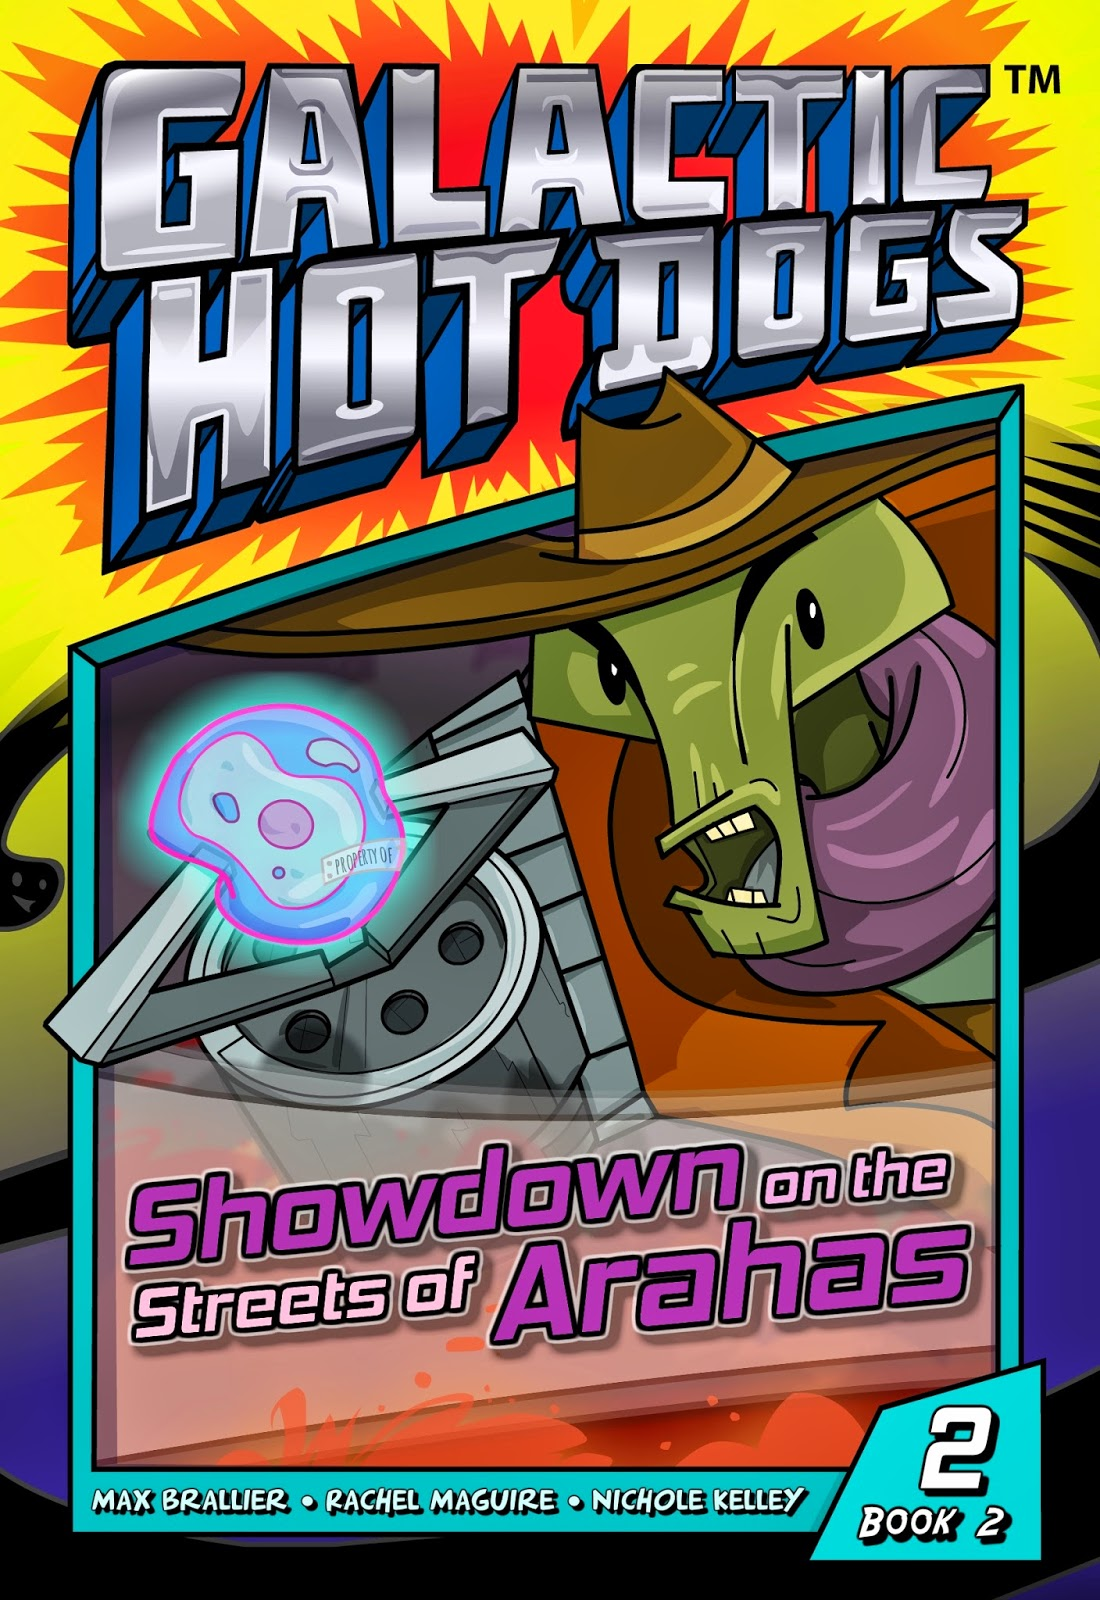 Galactic Hot Dogs: Book Two -- Chapter 2 -- Showdown on the Streets of Arahas